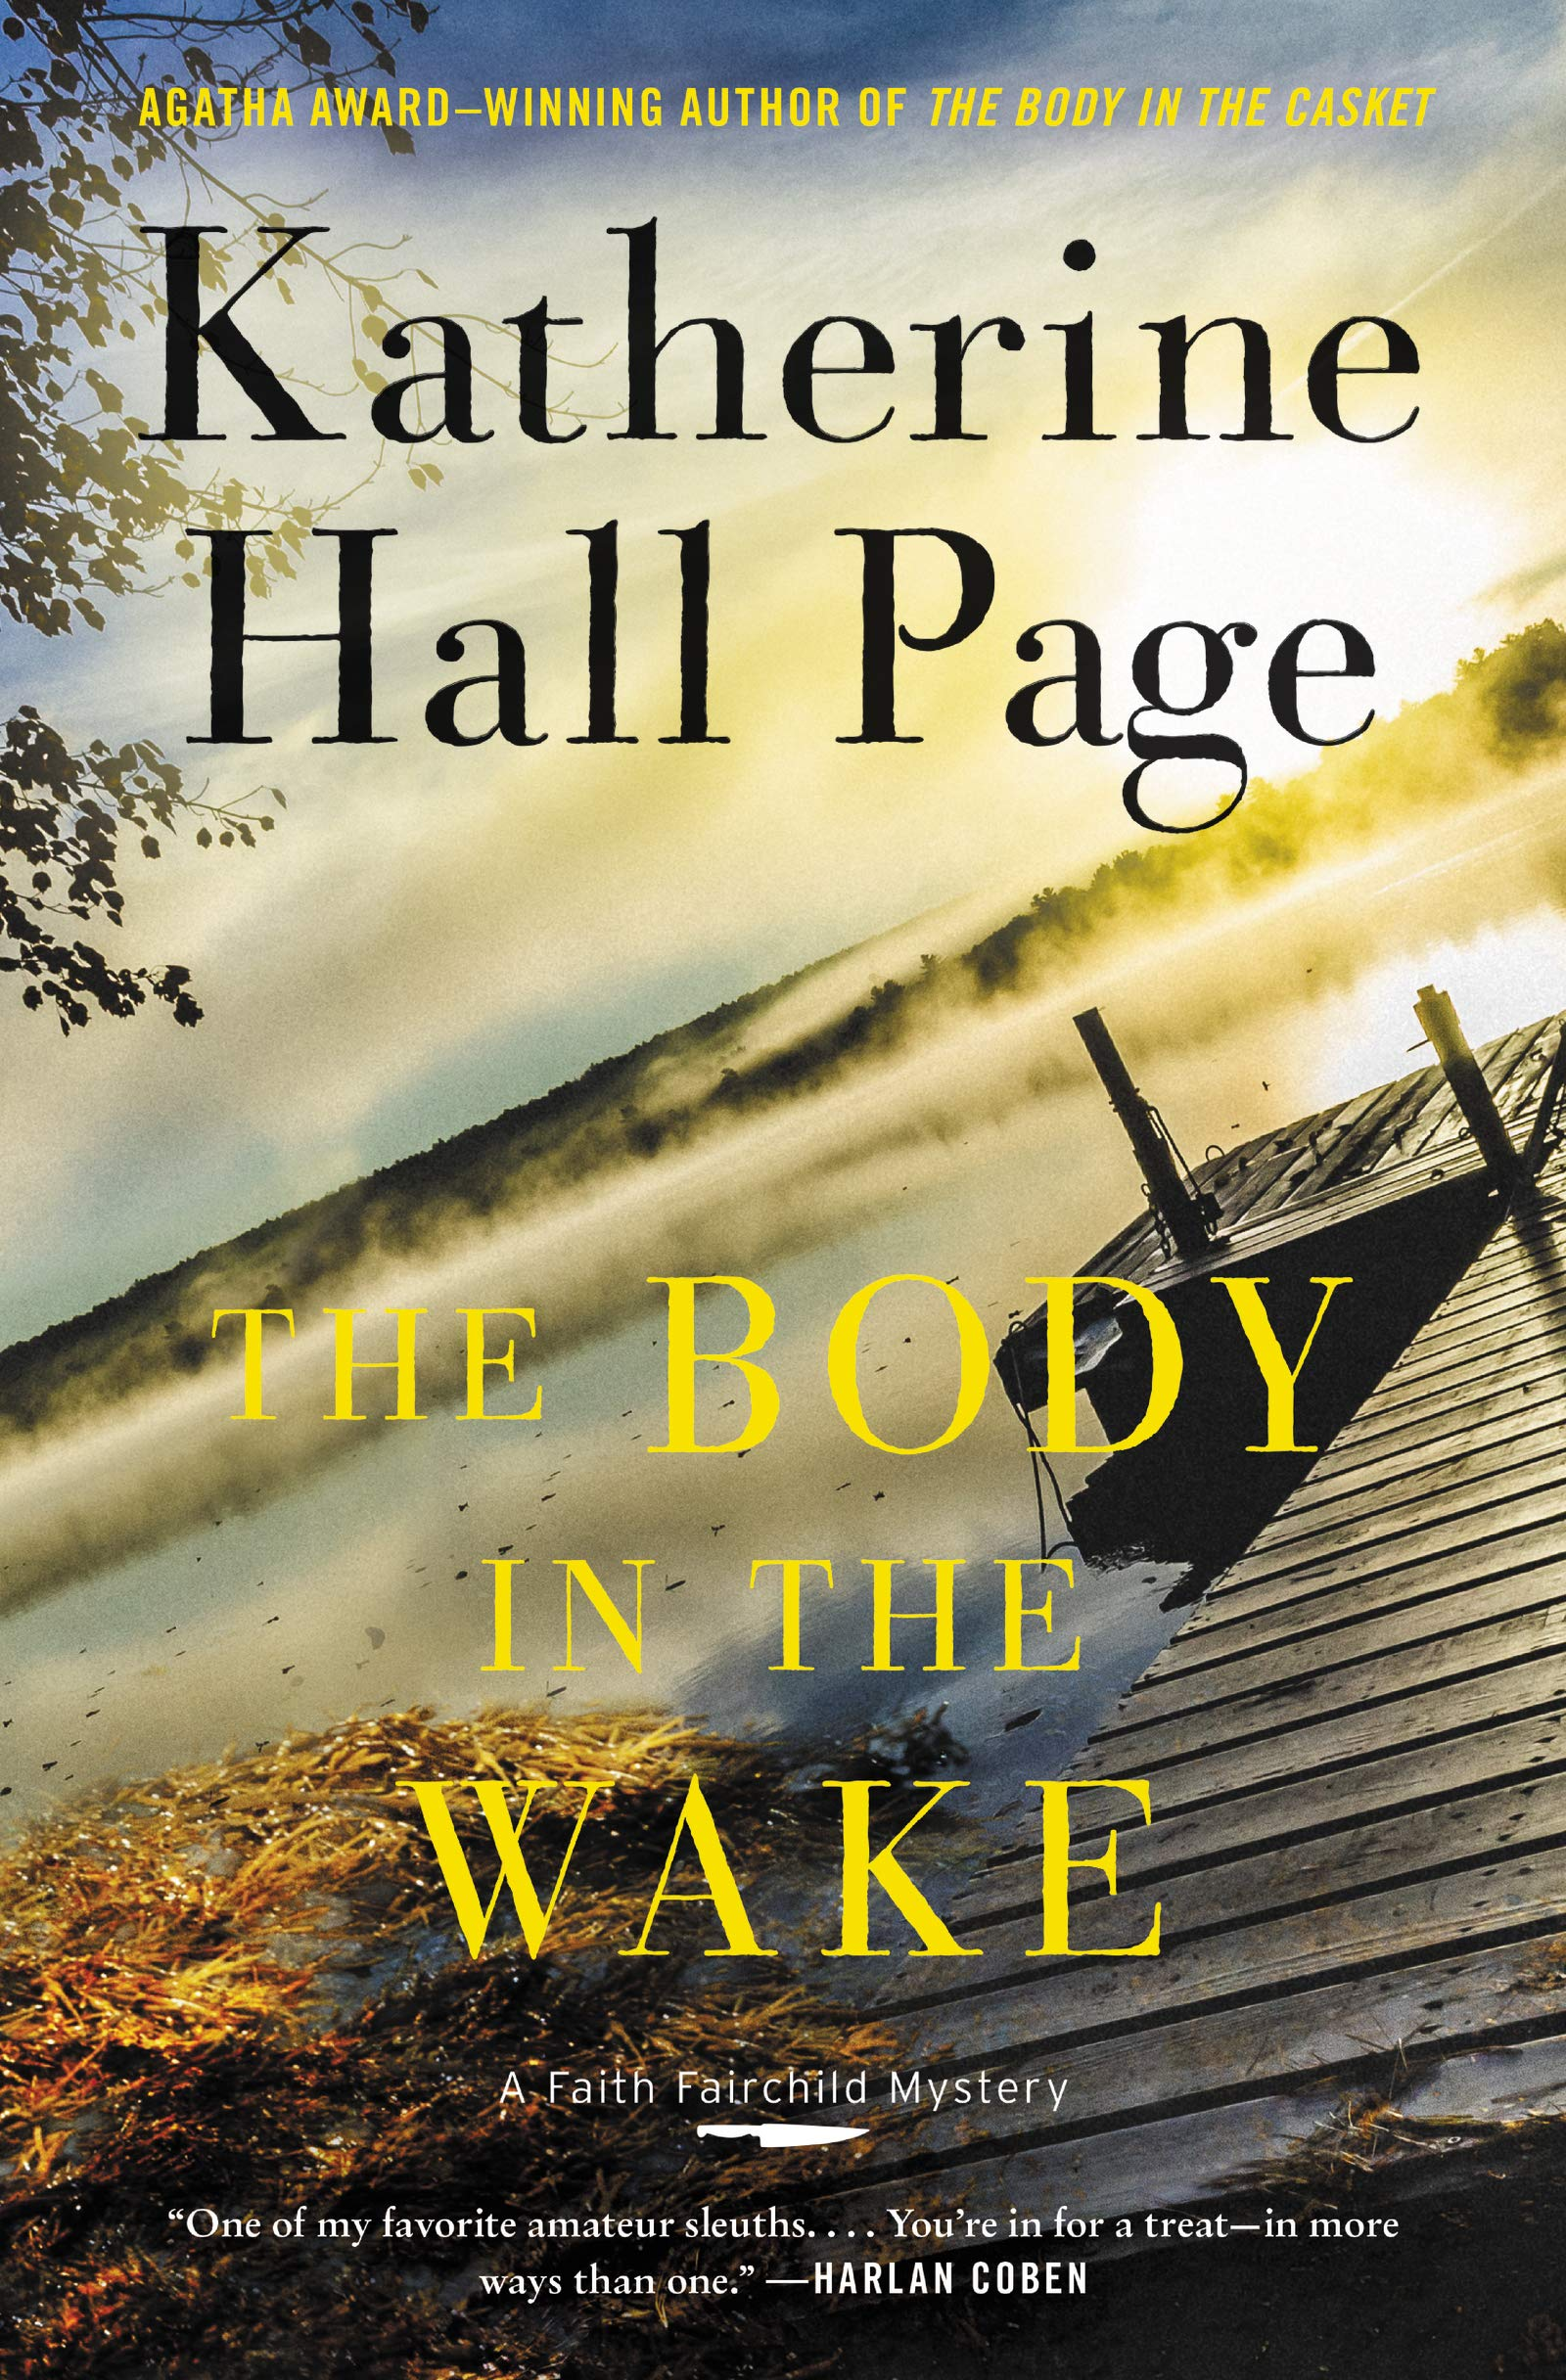 THE BODY IN THE WAKE - Katherine Hall Page - US Cover.jpg